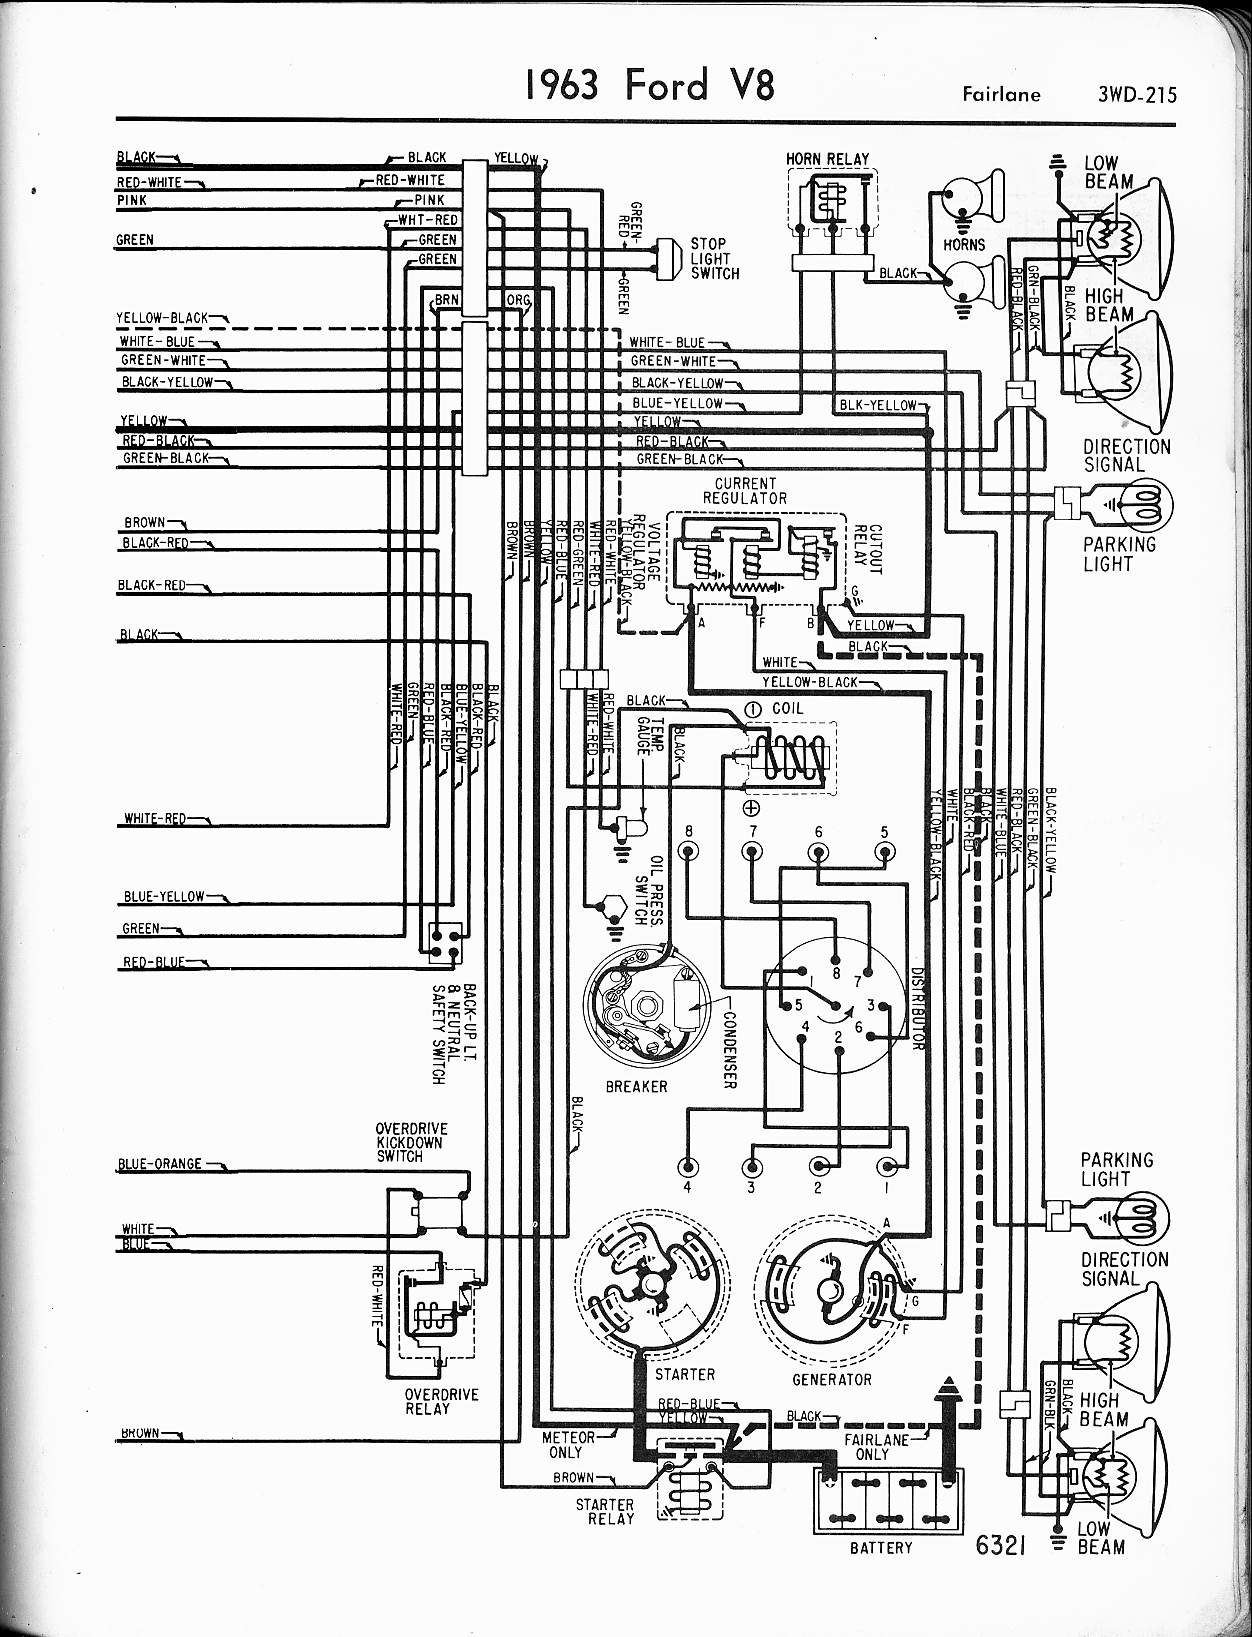 MWire5765 215 57 65 ford wiring diagrams 1963 ford wiring diagram at crackthecode.co